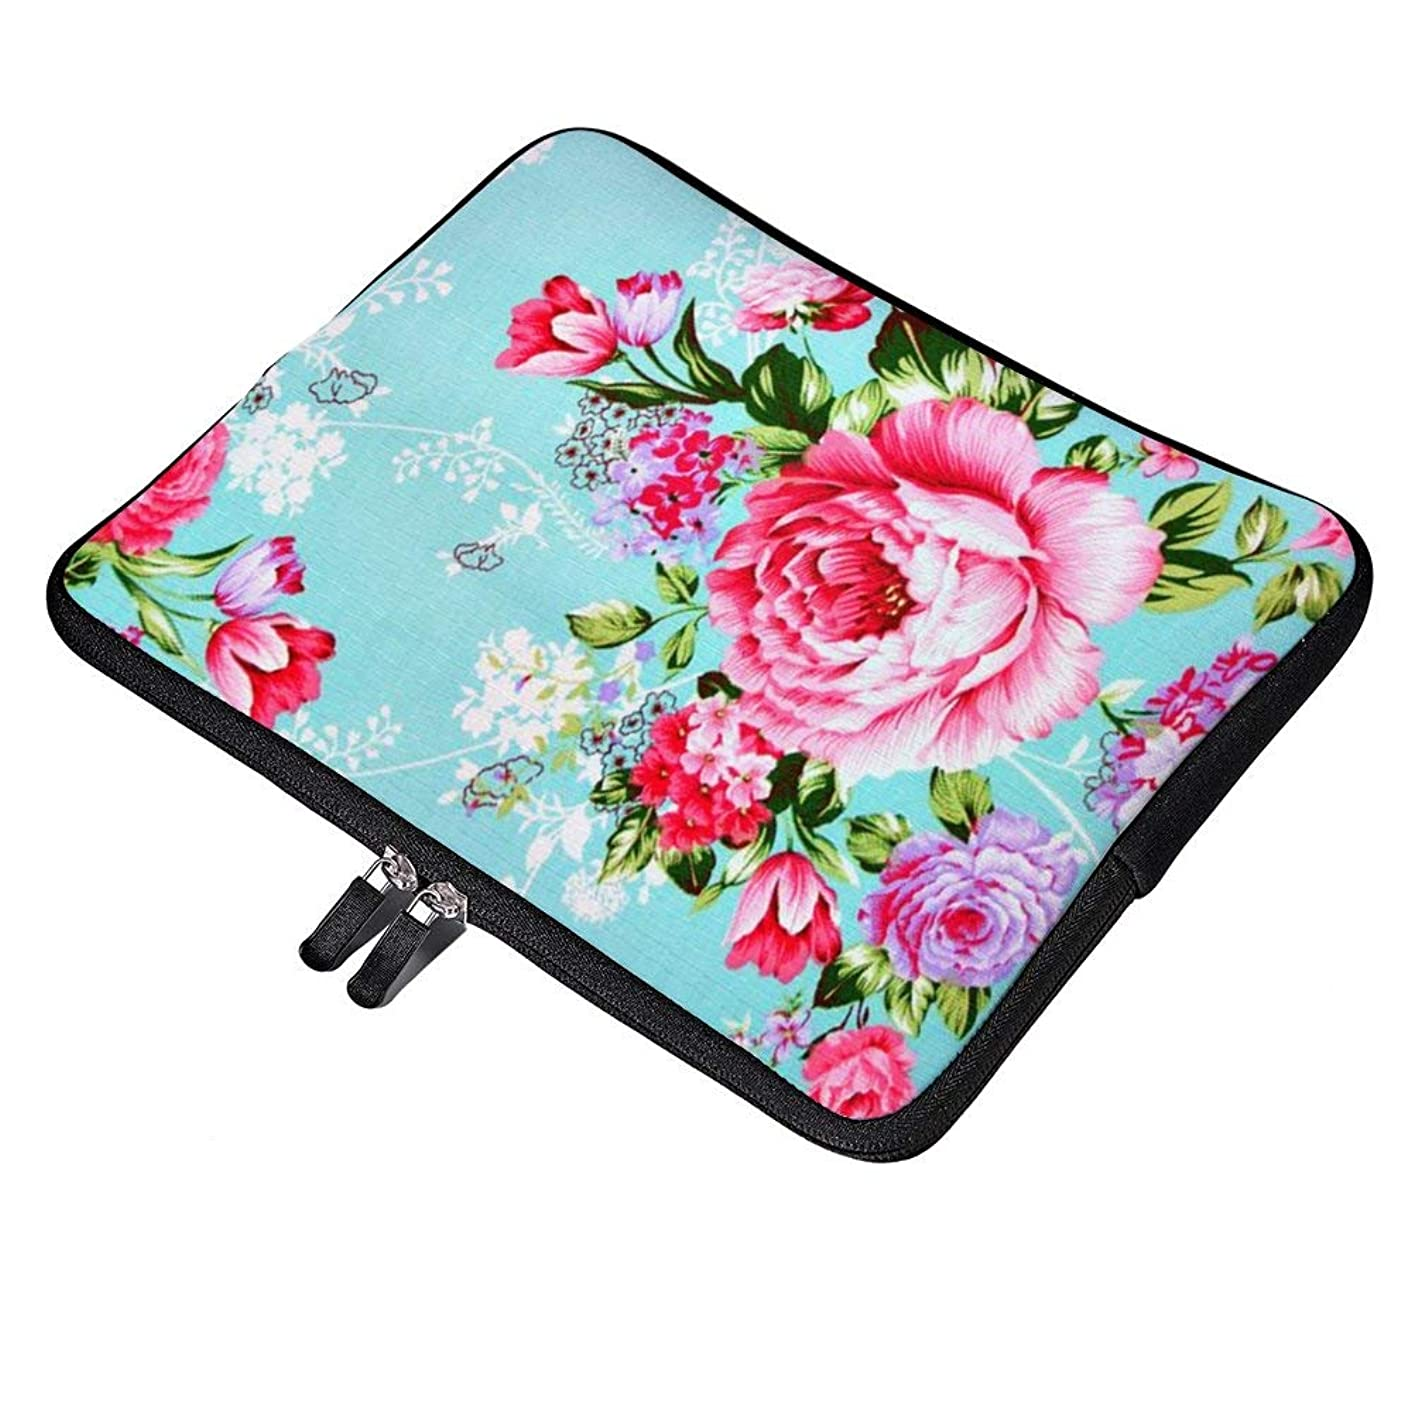 Vintage Chic Pink Floral GelNeoprene Soft Sleeve Case for MacBook 12 Inch & MacBook Air 11.6 Inch and Laptop up to 12